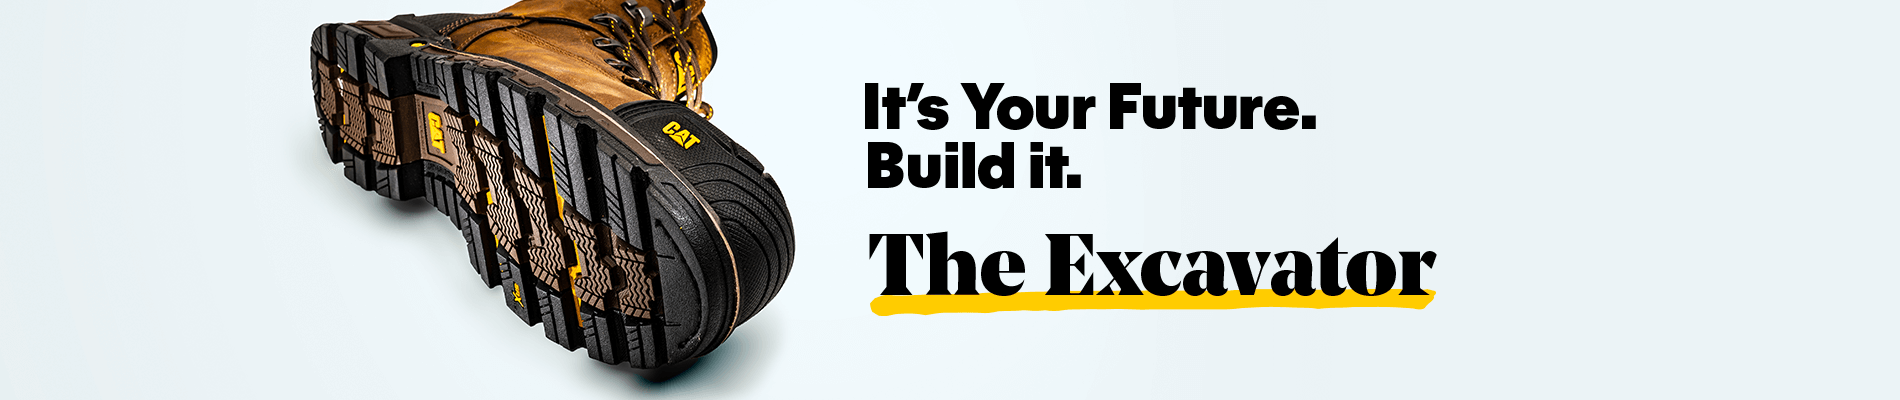 It's Your Future. Build it. The Excavator